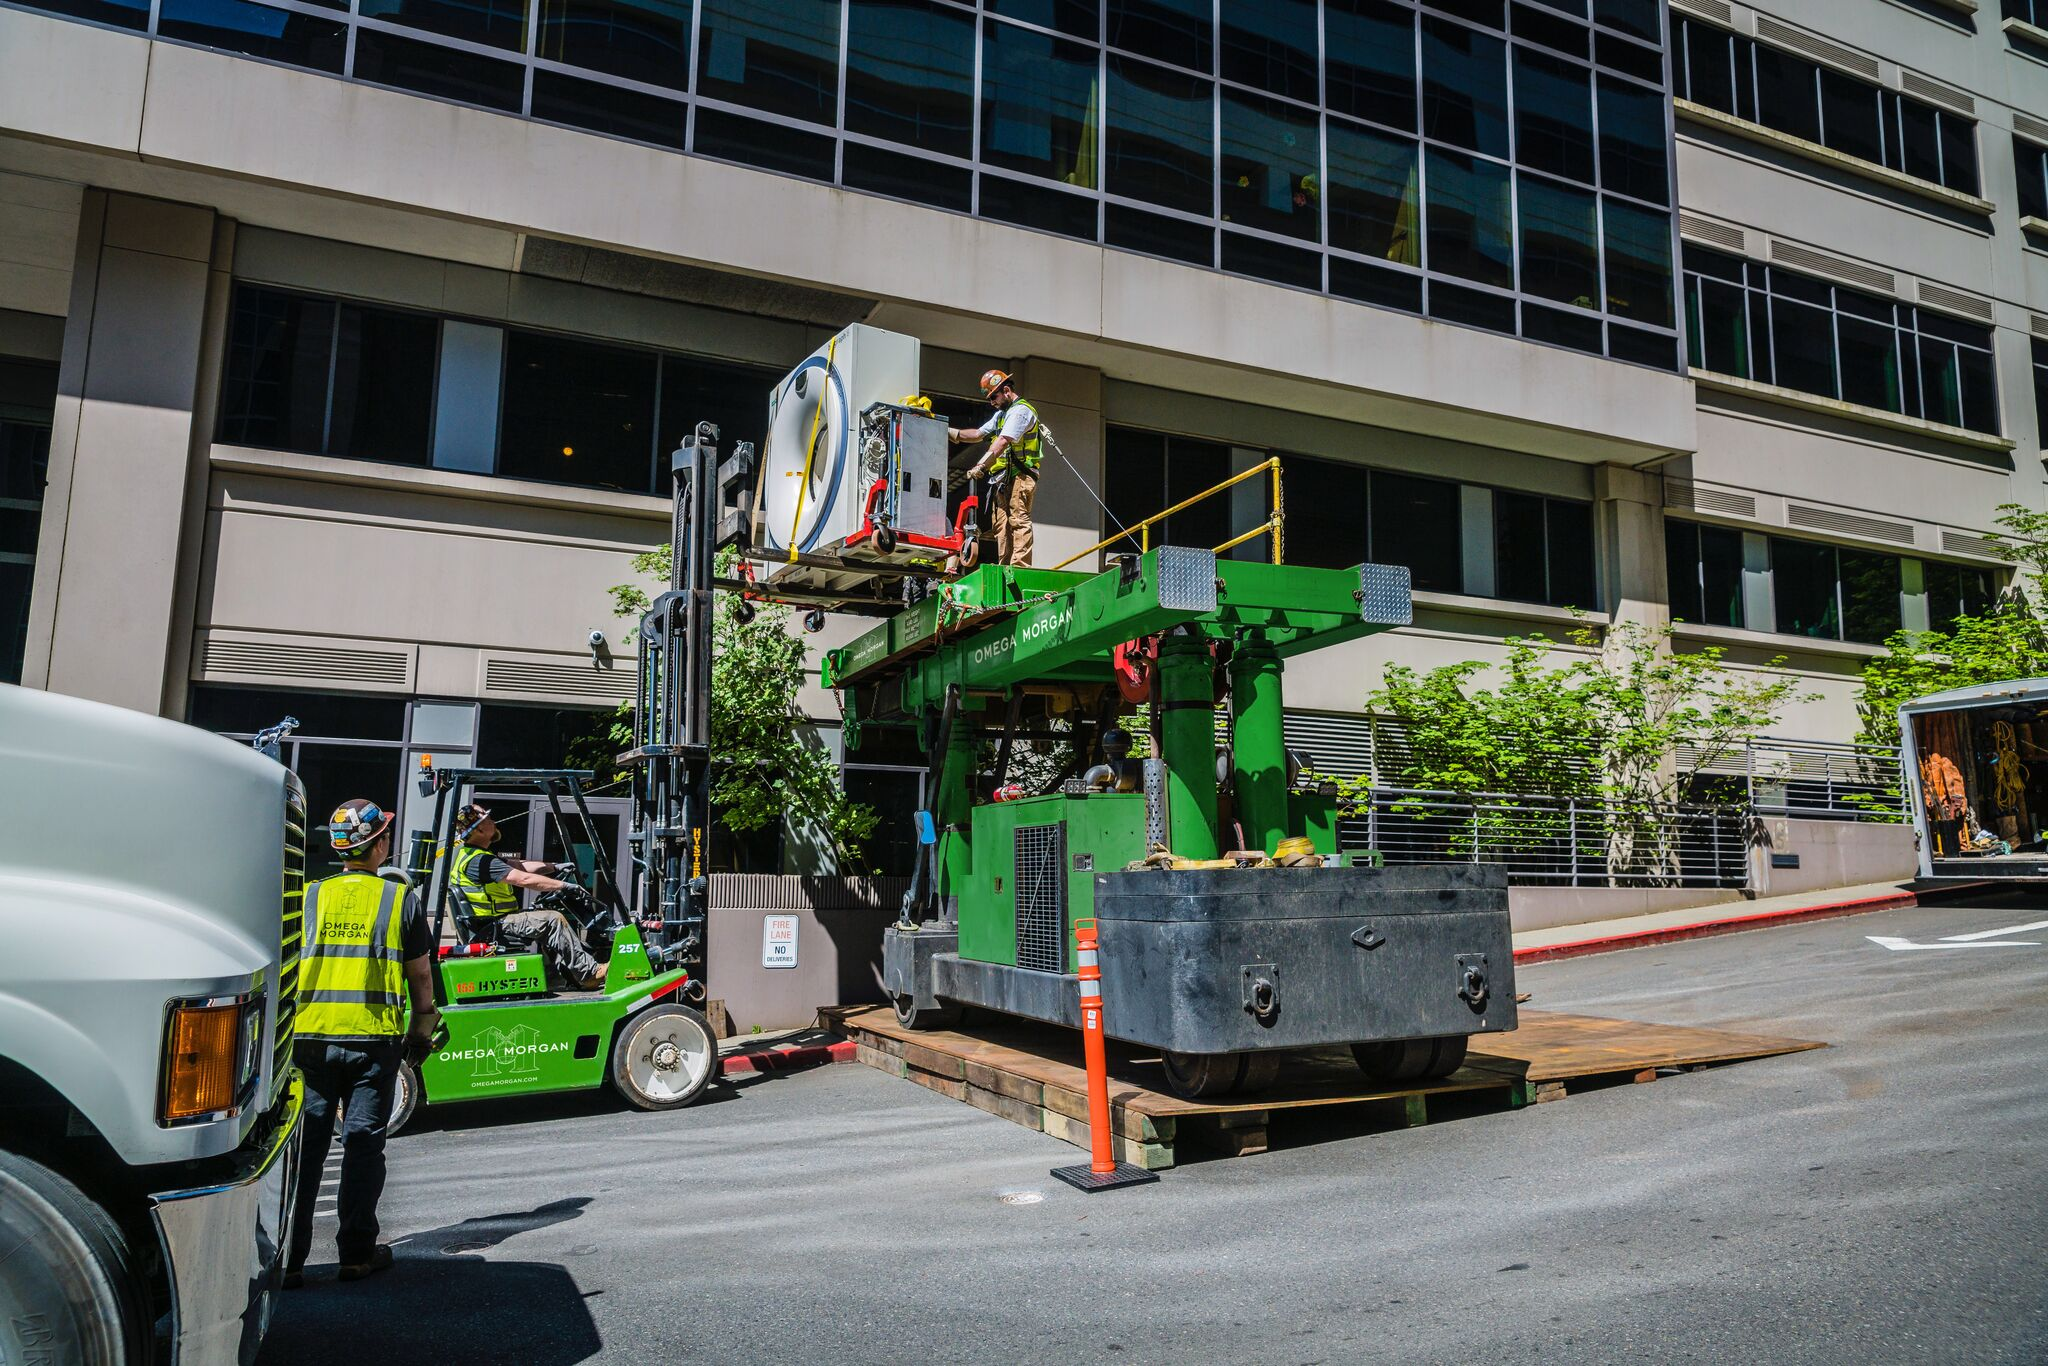 Moving MRI unit into 2nd floor of medical building using tri-lifter and versa lift